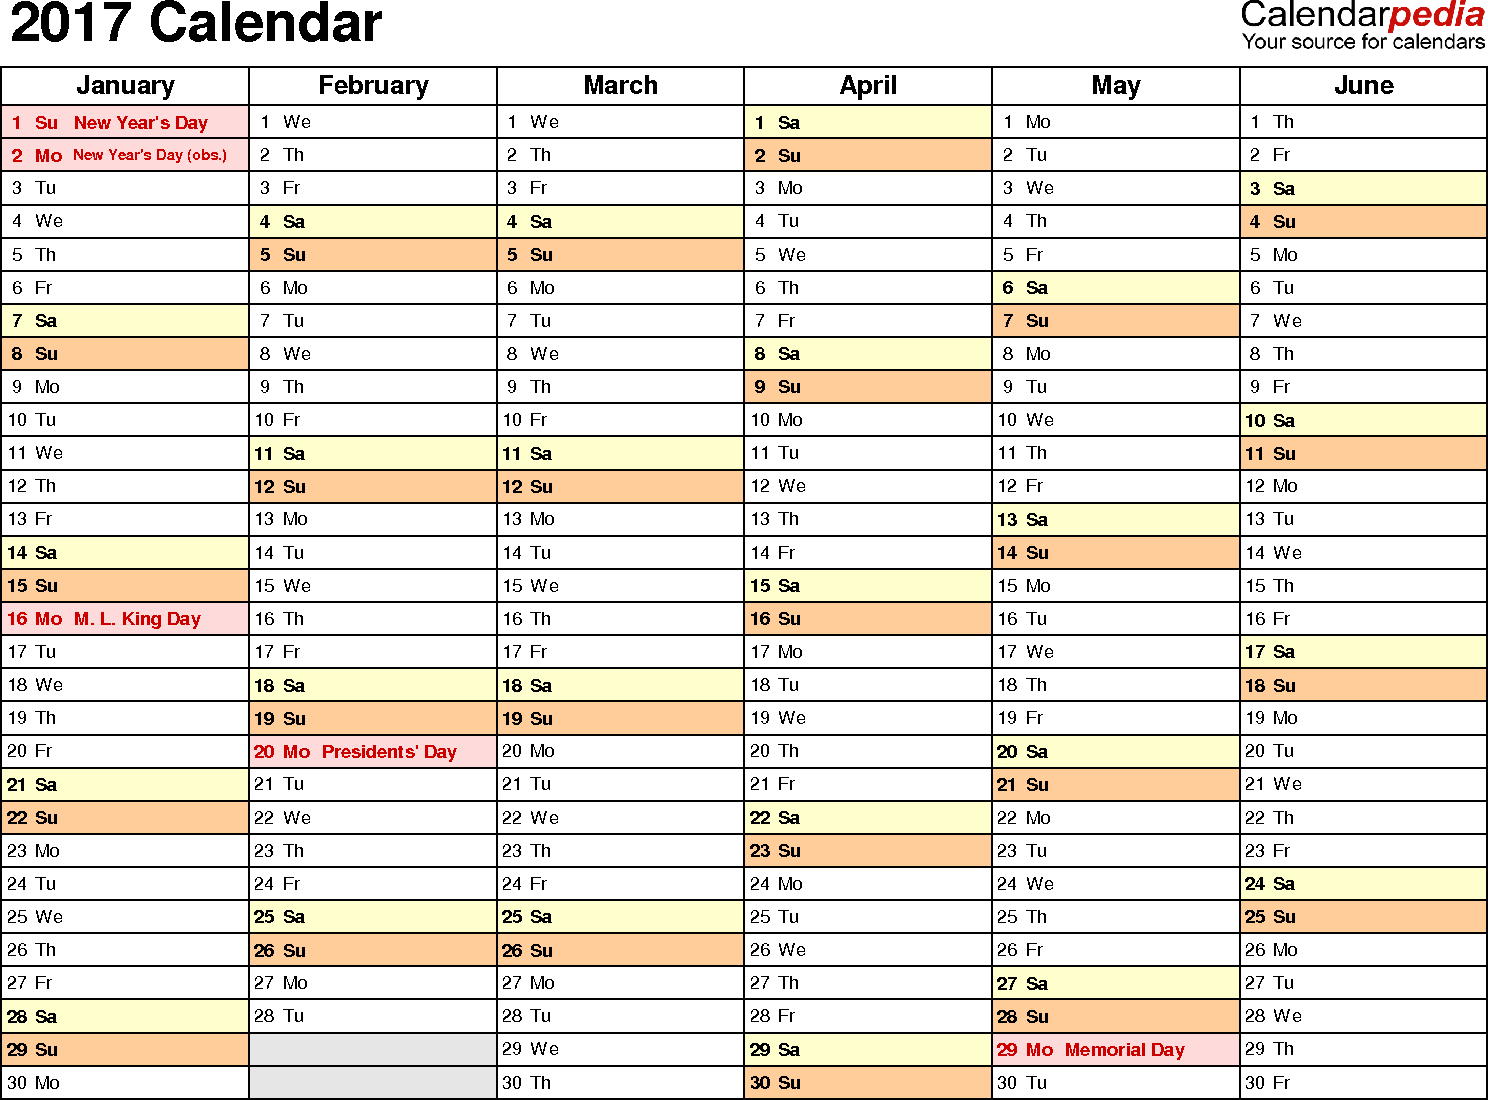 Ediblewildsus  Personable  Calendar  Download  Free Printable Excel Templates Xls With Luxury Template   Calendar For Excel Months Horizontally  Pages Landscape Orientation With Appealing Free Excel Purchase Order Template Also Excel Undo Macro In Addition Excel Event Id  And Icc Excel As Well As Excel Vba Outlook Additionally Create Random Number In Excel From Calendarpediacom With Ediblewildsus  Luxury  Calendar  Download  Free Printable Excel Templates Xls With Appealing Template   Calendar For Excel Months Horizontally  Pages Landscape Orientation And Personable Free Excel Purchase Order Template Also Excel Undo Macro In Addition Excel Event Id  From Calendarpediacom